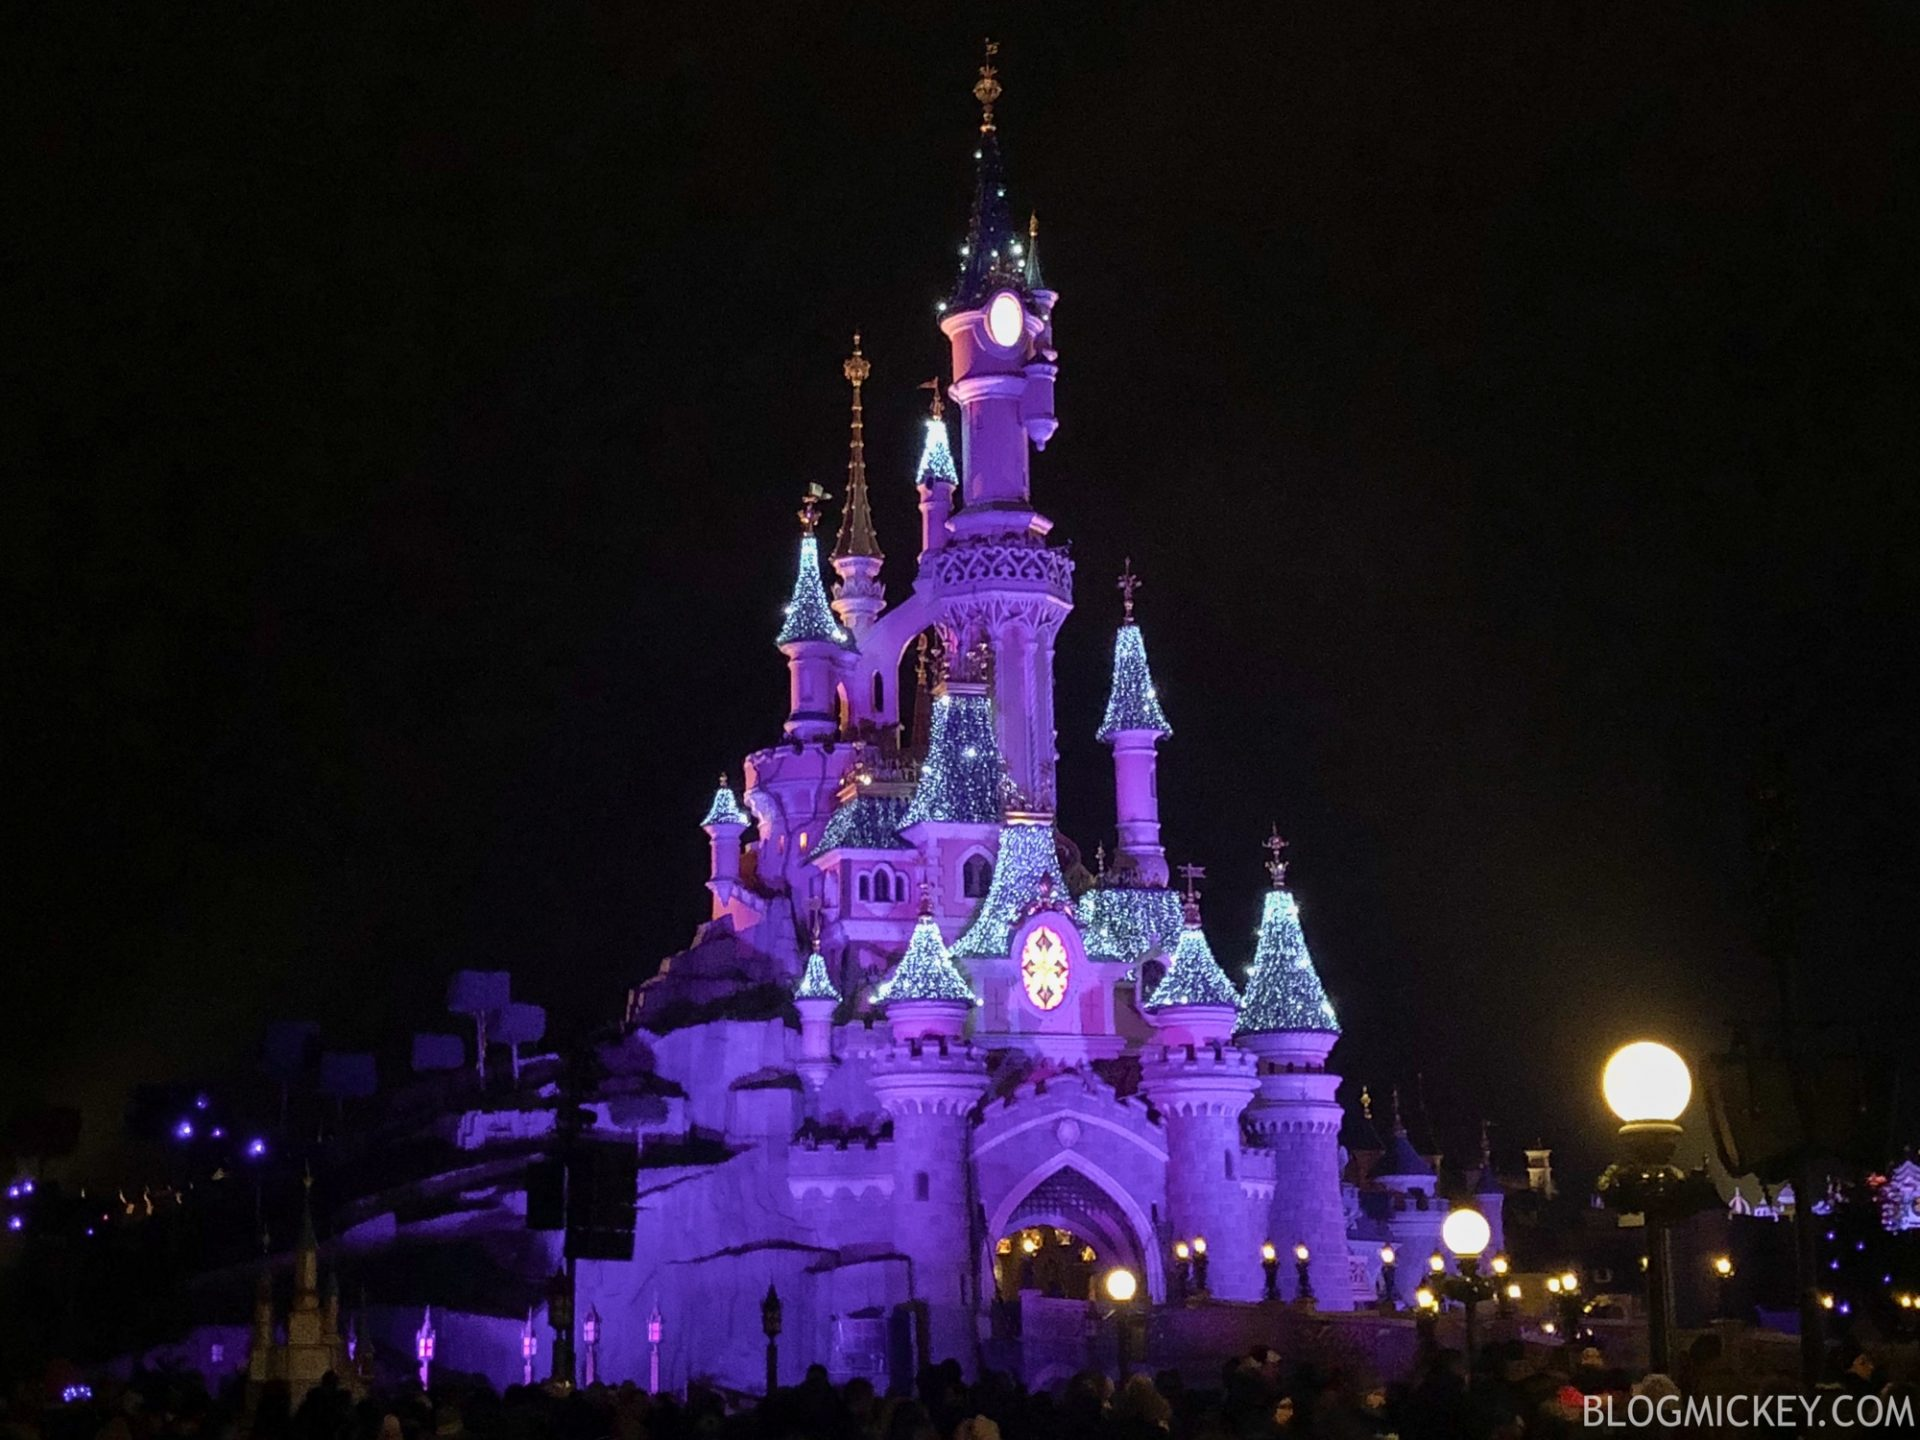 Disneyland During Christmas.New Projection Mapping To Replace Christmas Lighting On